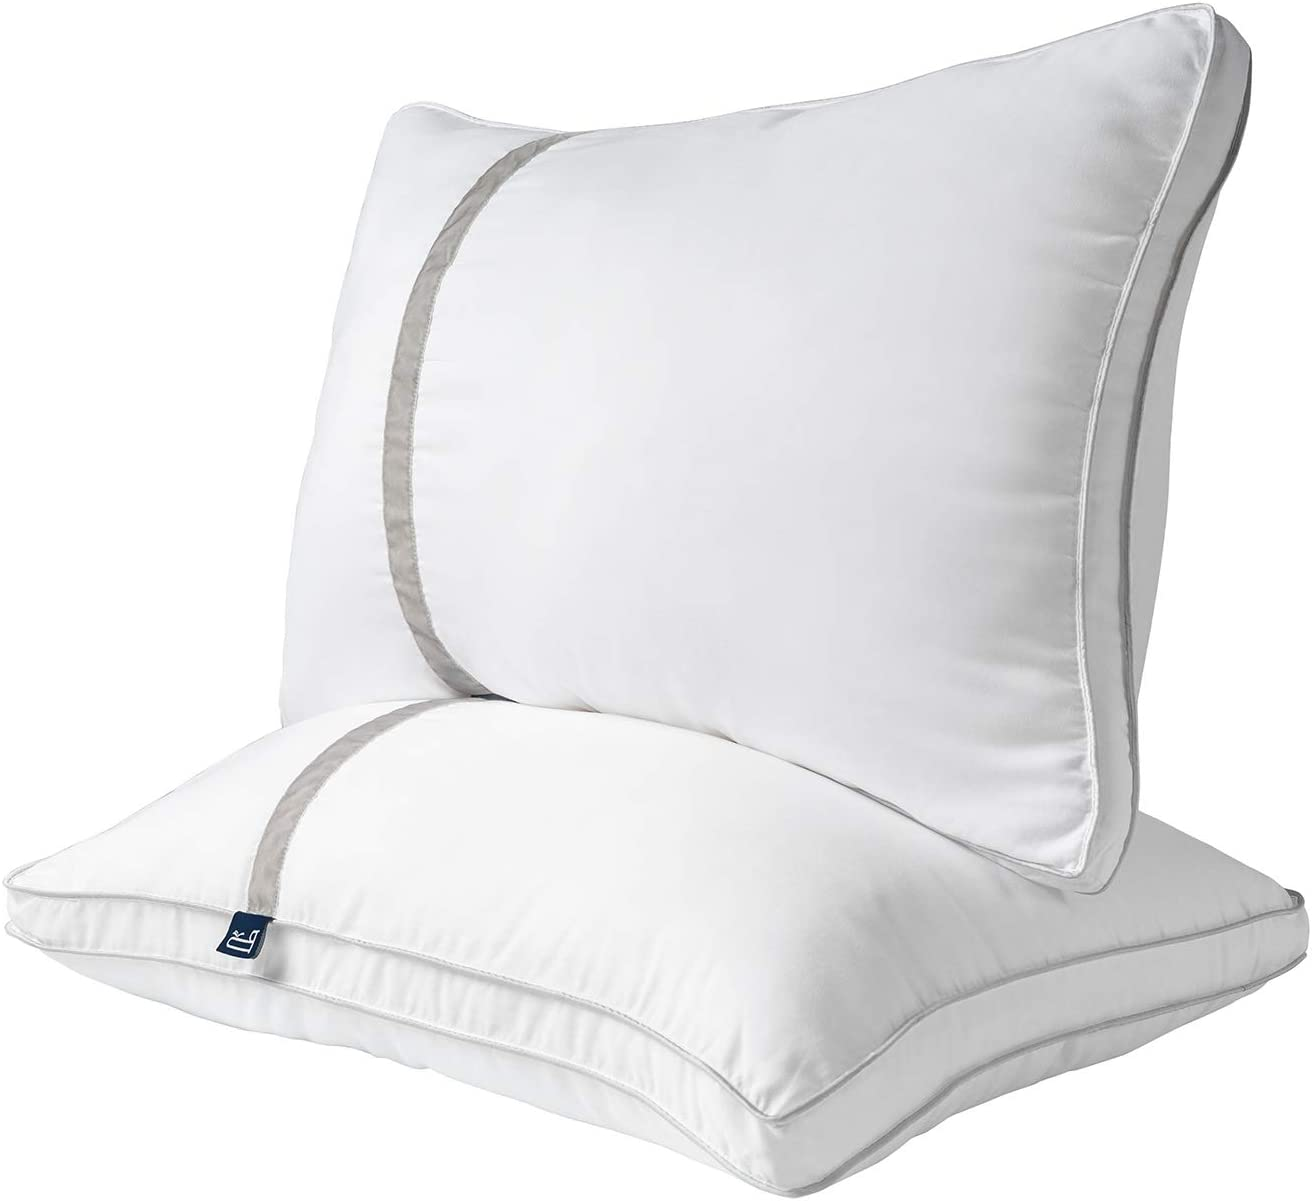 BedStory Pillows for Sleeping 2 Pack, Hotel Collection Down Alternative Bed Pillow King Size, Hypoallergenic Pillow for Side and Back Sleepers, Ultra Soft & Breathable